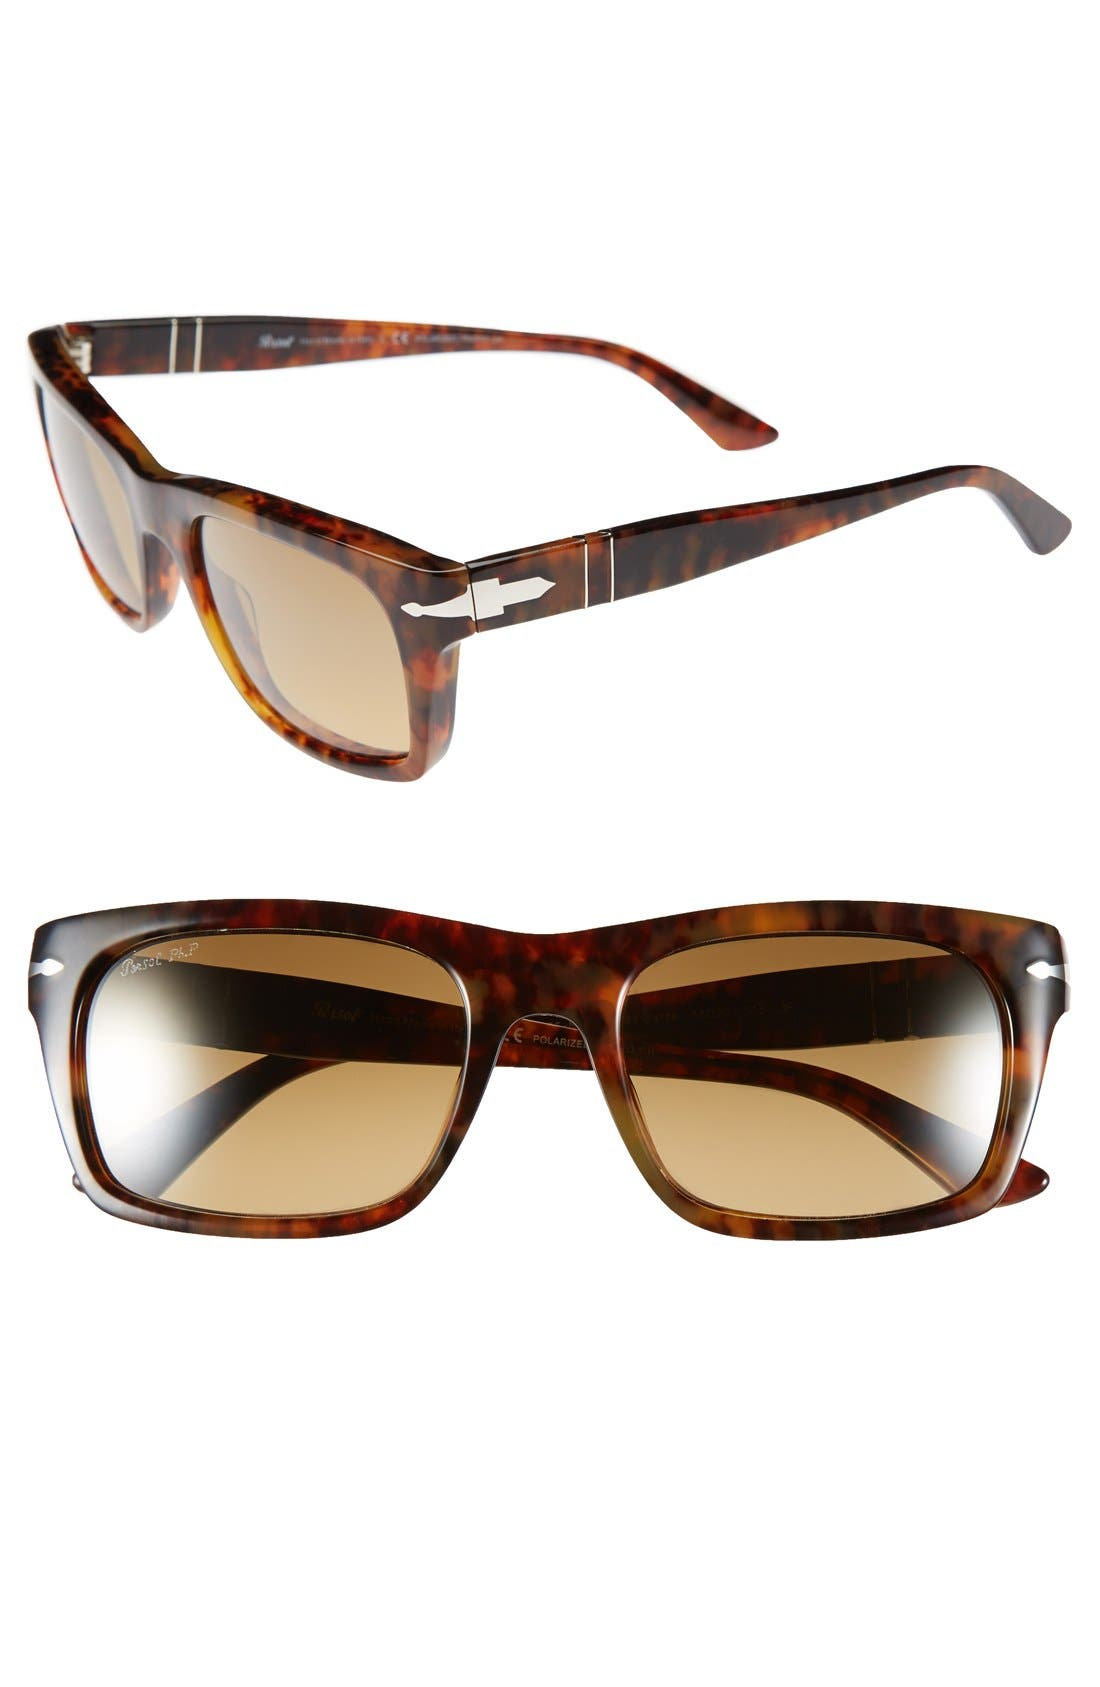 Main Image - Persol 55mm Photochromatic Sunglasses